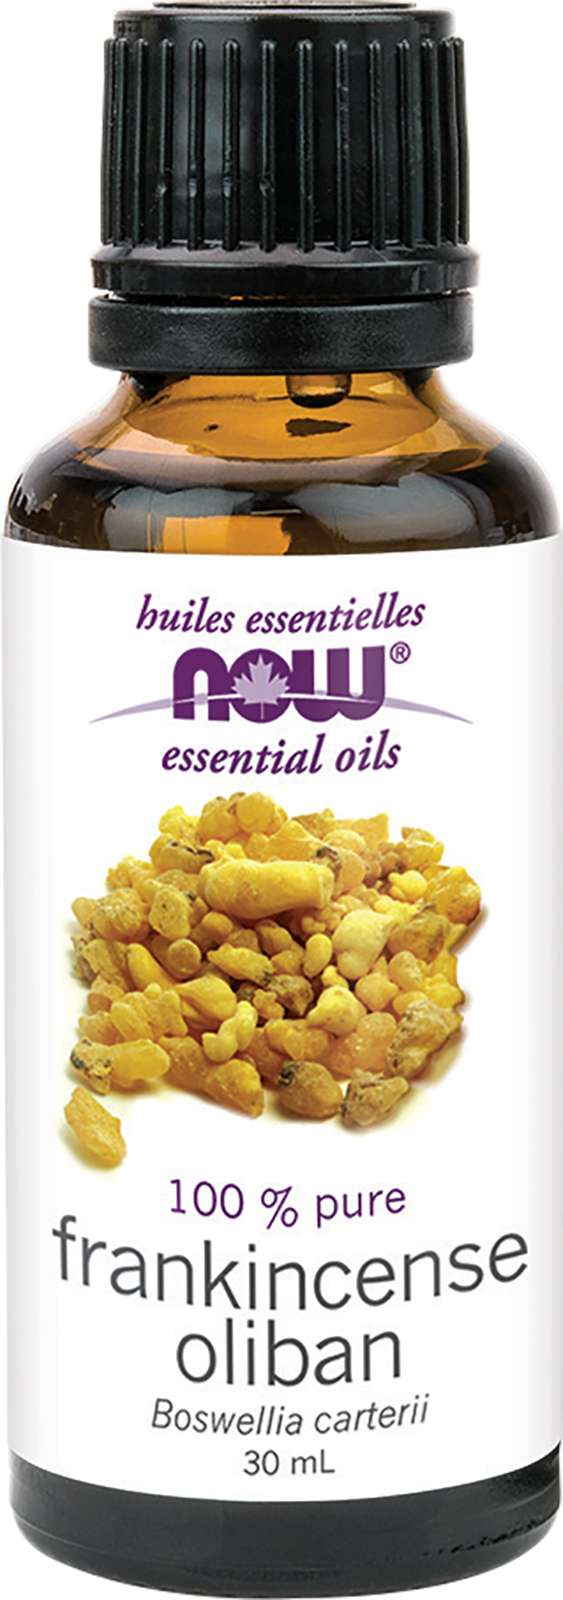 Frankincense Oil (Boswellia carterii)30mL